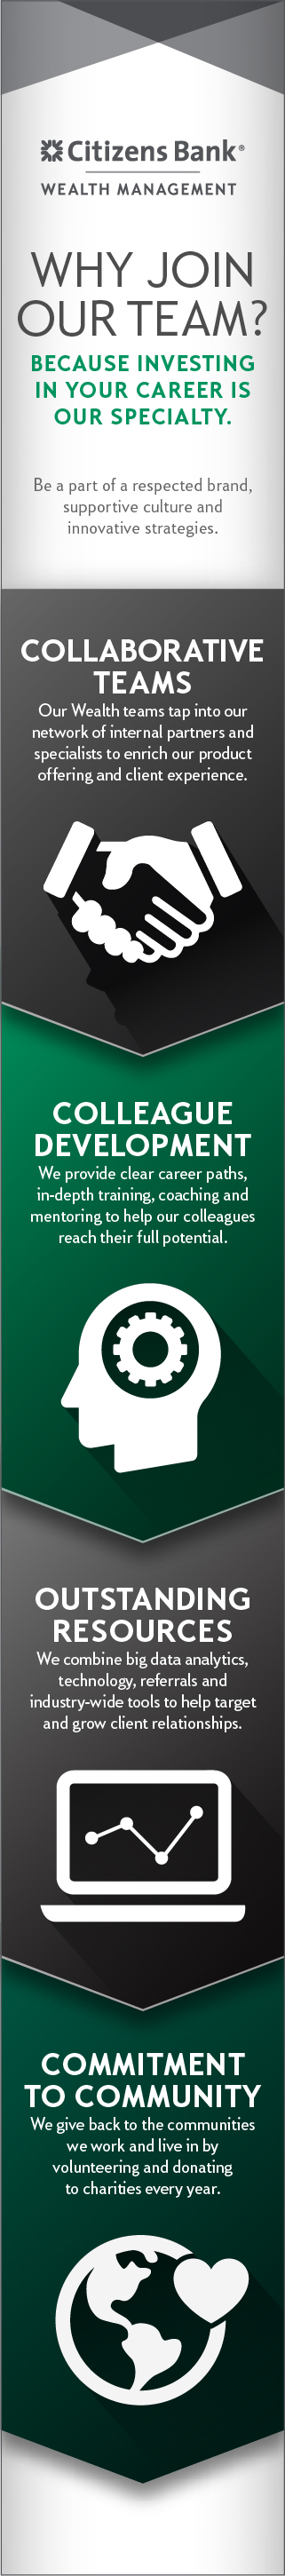 Citizens Bank - Wealth Management. Why join our team? Because investing in you career is our specialty. Be part of a respected brand, supportive culture and innovative strategies. Collaborative Teams: Our Wealth teams tap into our network of internal partners and specialists to enrich our product offering and client experience. Colleague Development: We provide clear career paths, in-depth training, coaching and mentoring to help our colleagues reach their full potential. Outstanding Resources: We combine big data analytics, technology, referrals and industry-wide tool to help target and grow client relationships. Commitment to Community: We give back to the communities we work and live in by volunteering and donating to charities every year.